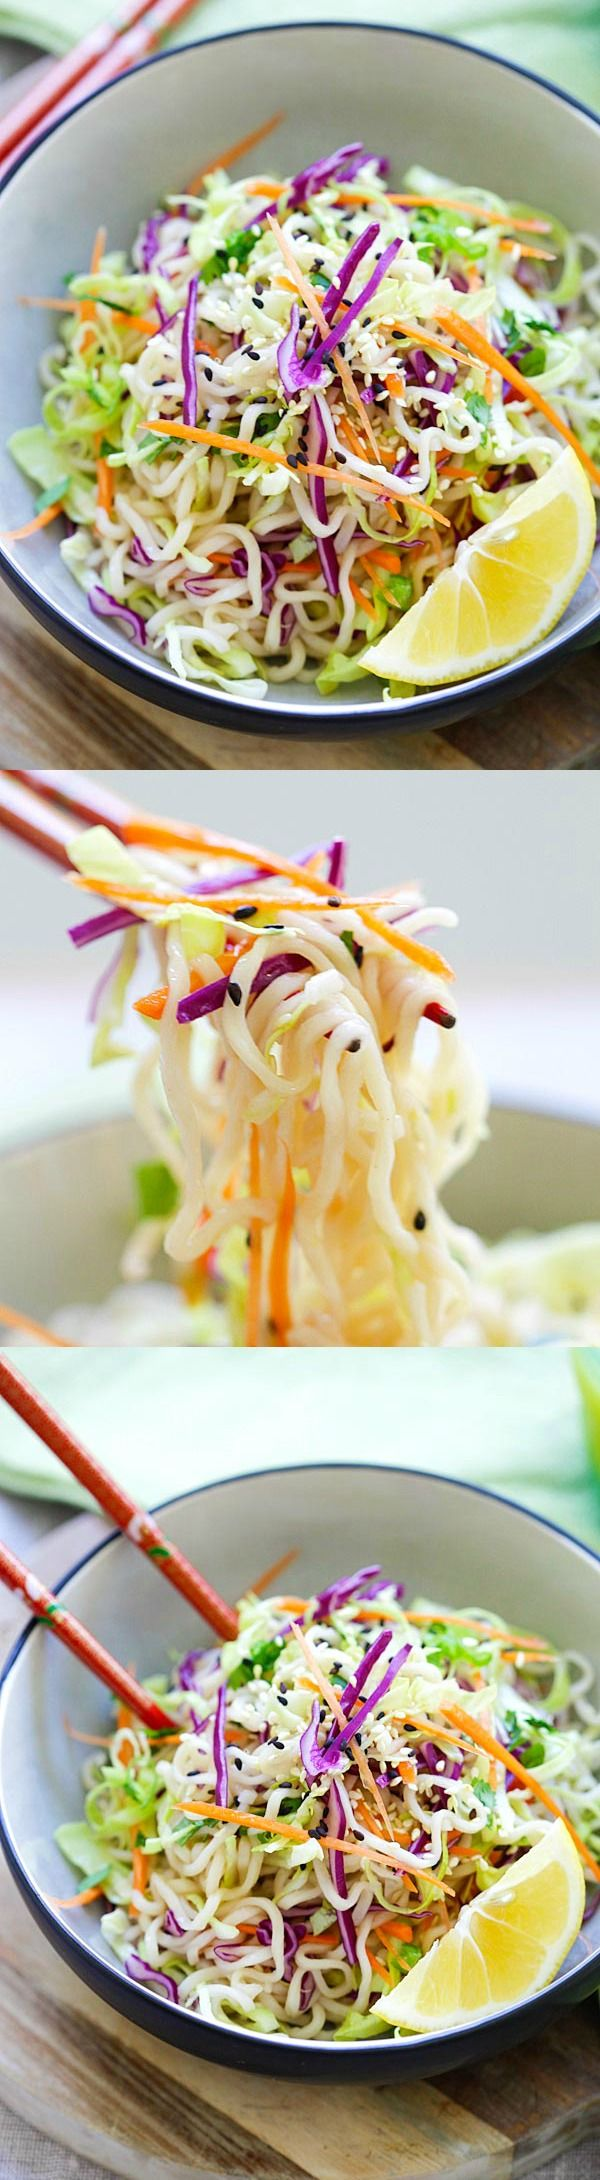 Ramen Noodle Salad – Asian salad made with ramen noodles, cabbage and carrots in a tangy and appetizing dressing. So healthy and delicious   rasamalaysia.com